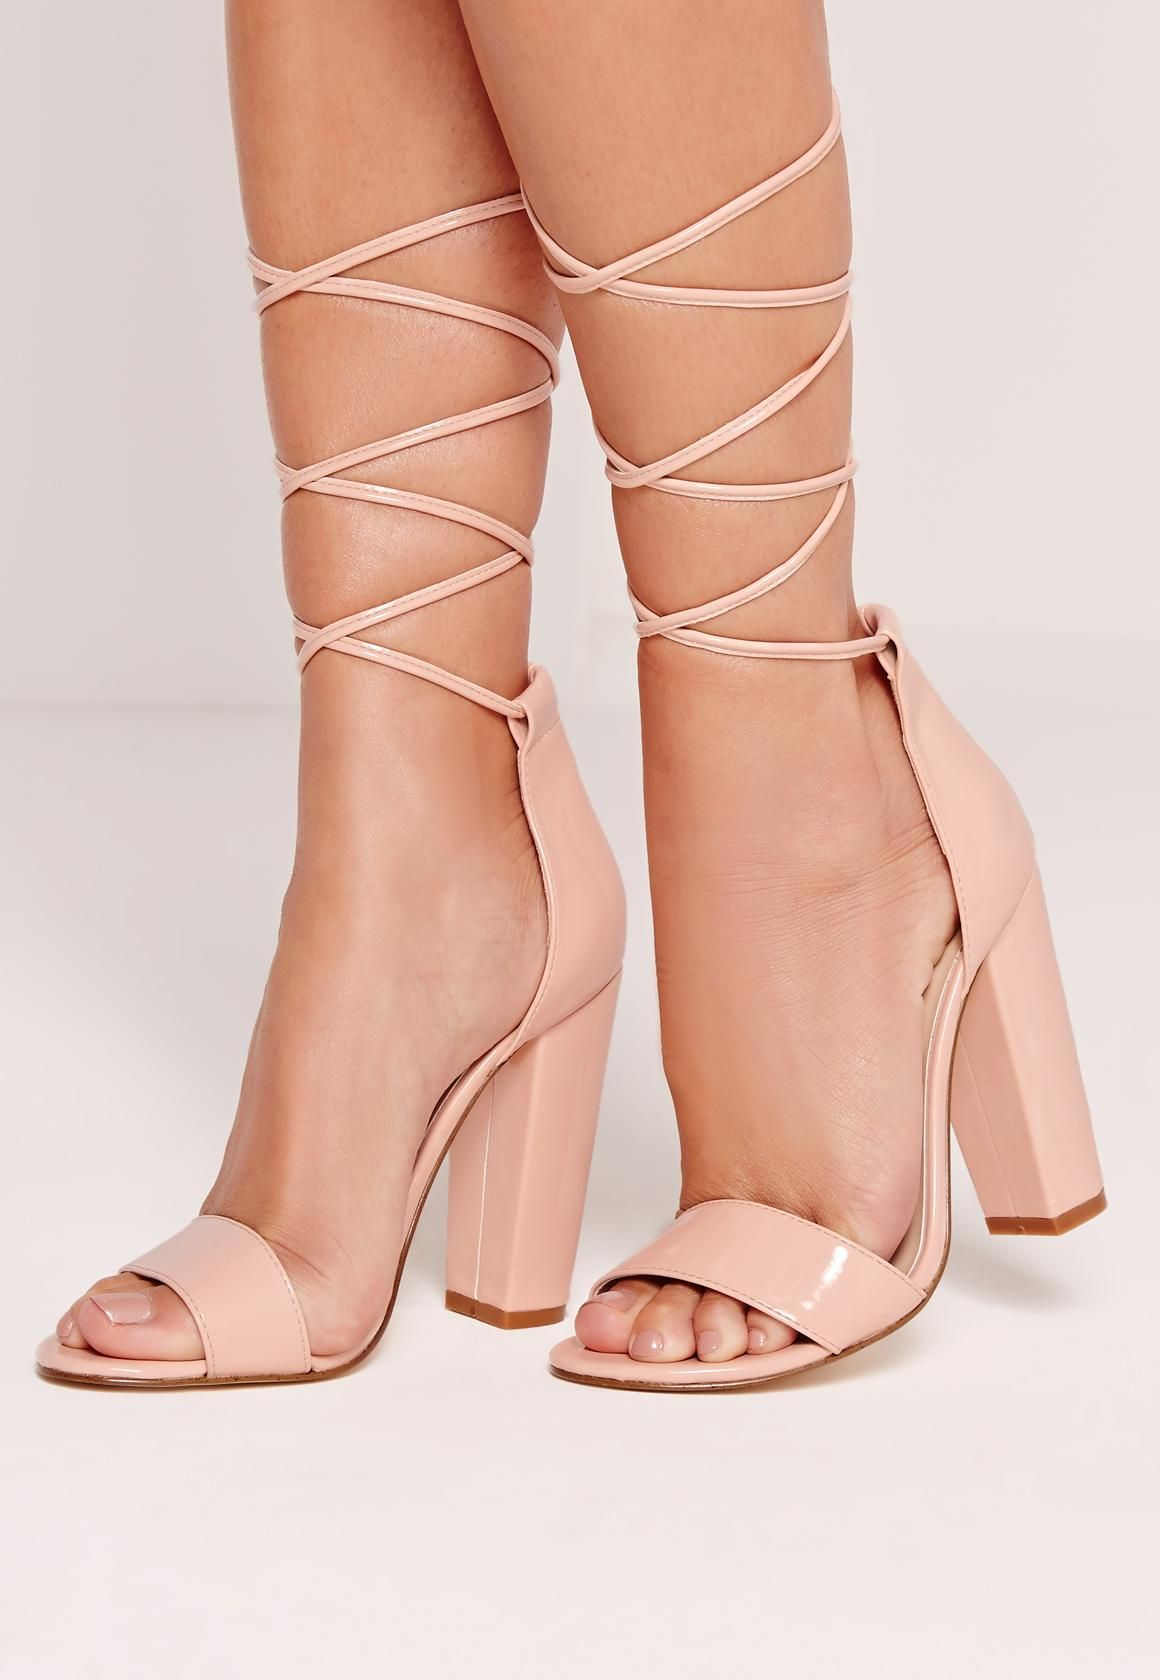 bbf311fe5e6 Missguided - Barely There Wrap Around Block Heels Nude